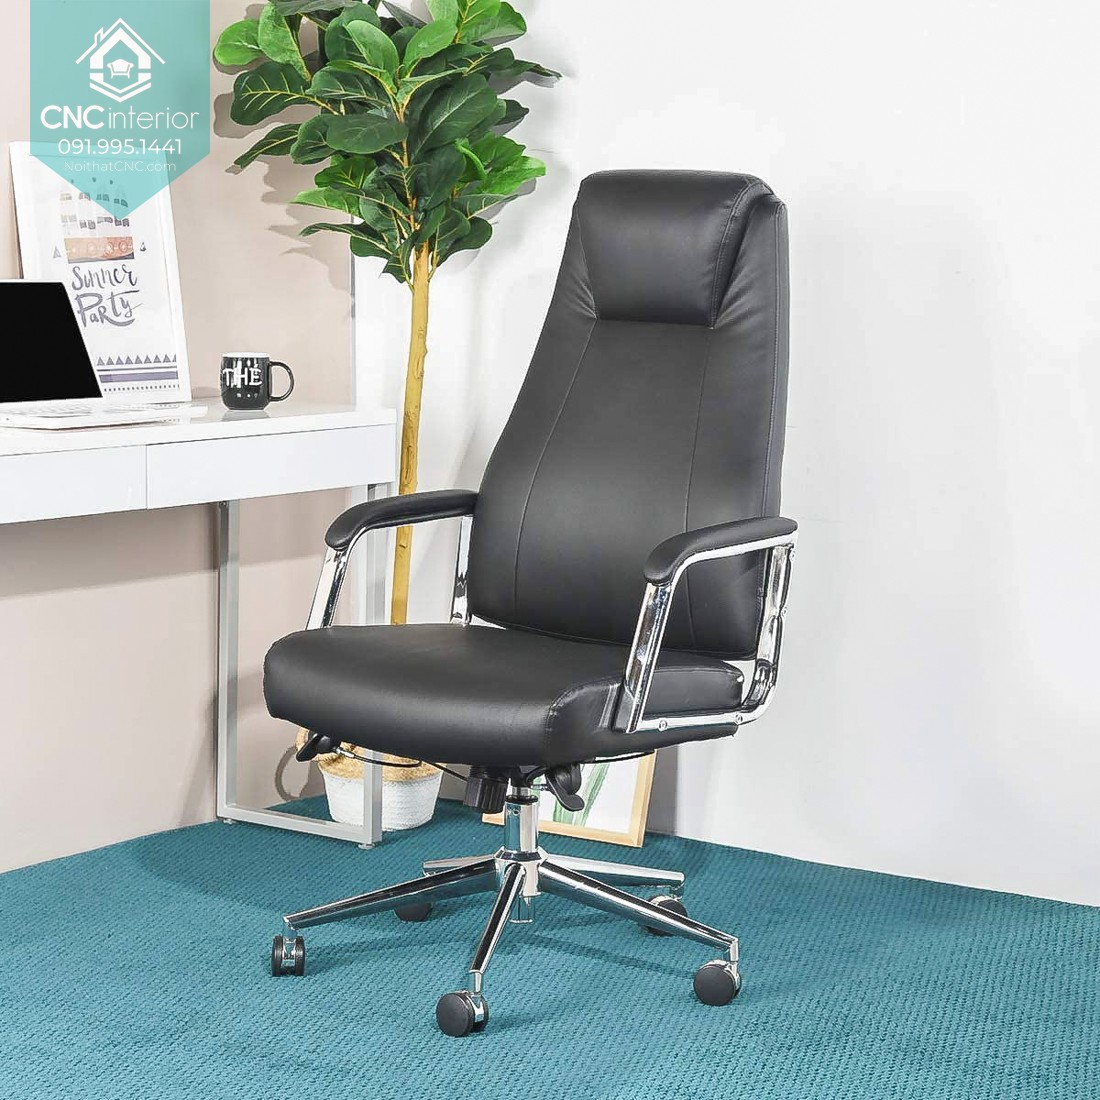 COMMON TYPES OF CHAIR VIETNAM TO MAKE YOUR SPACE STAND OUT 15